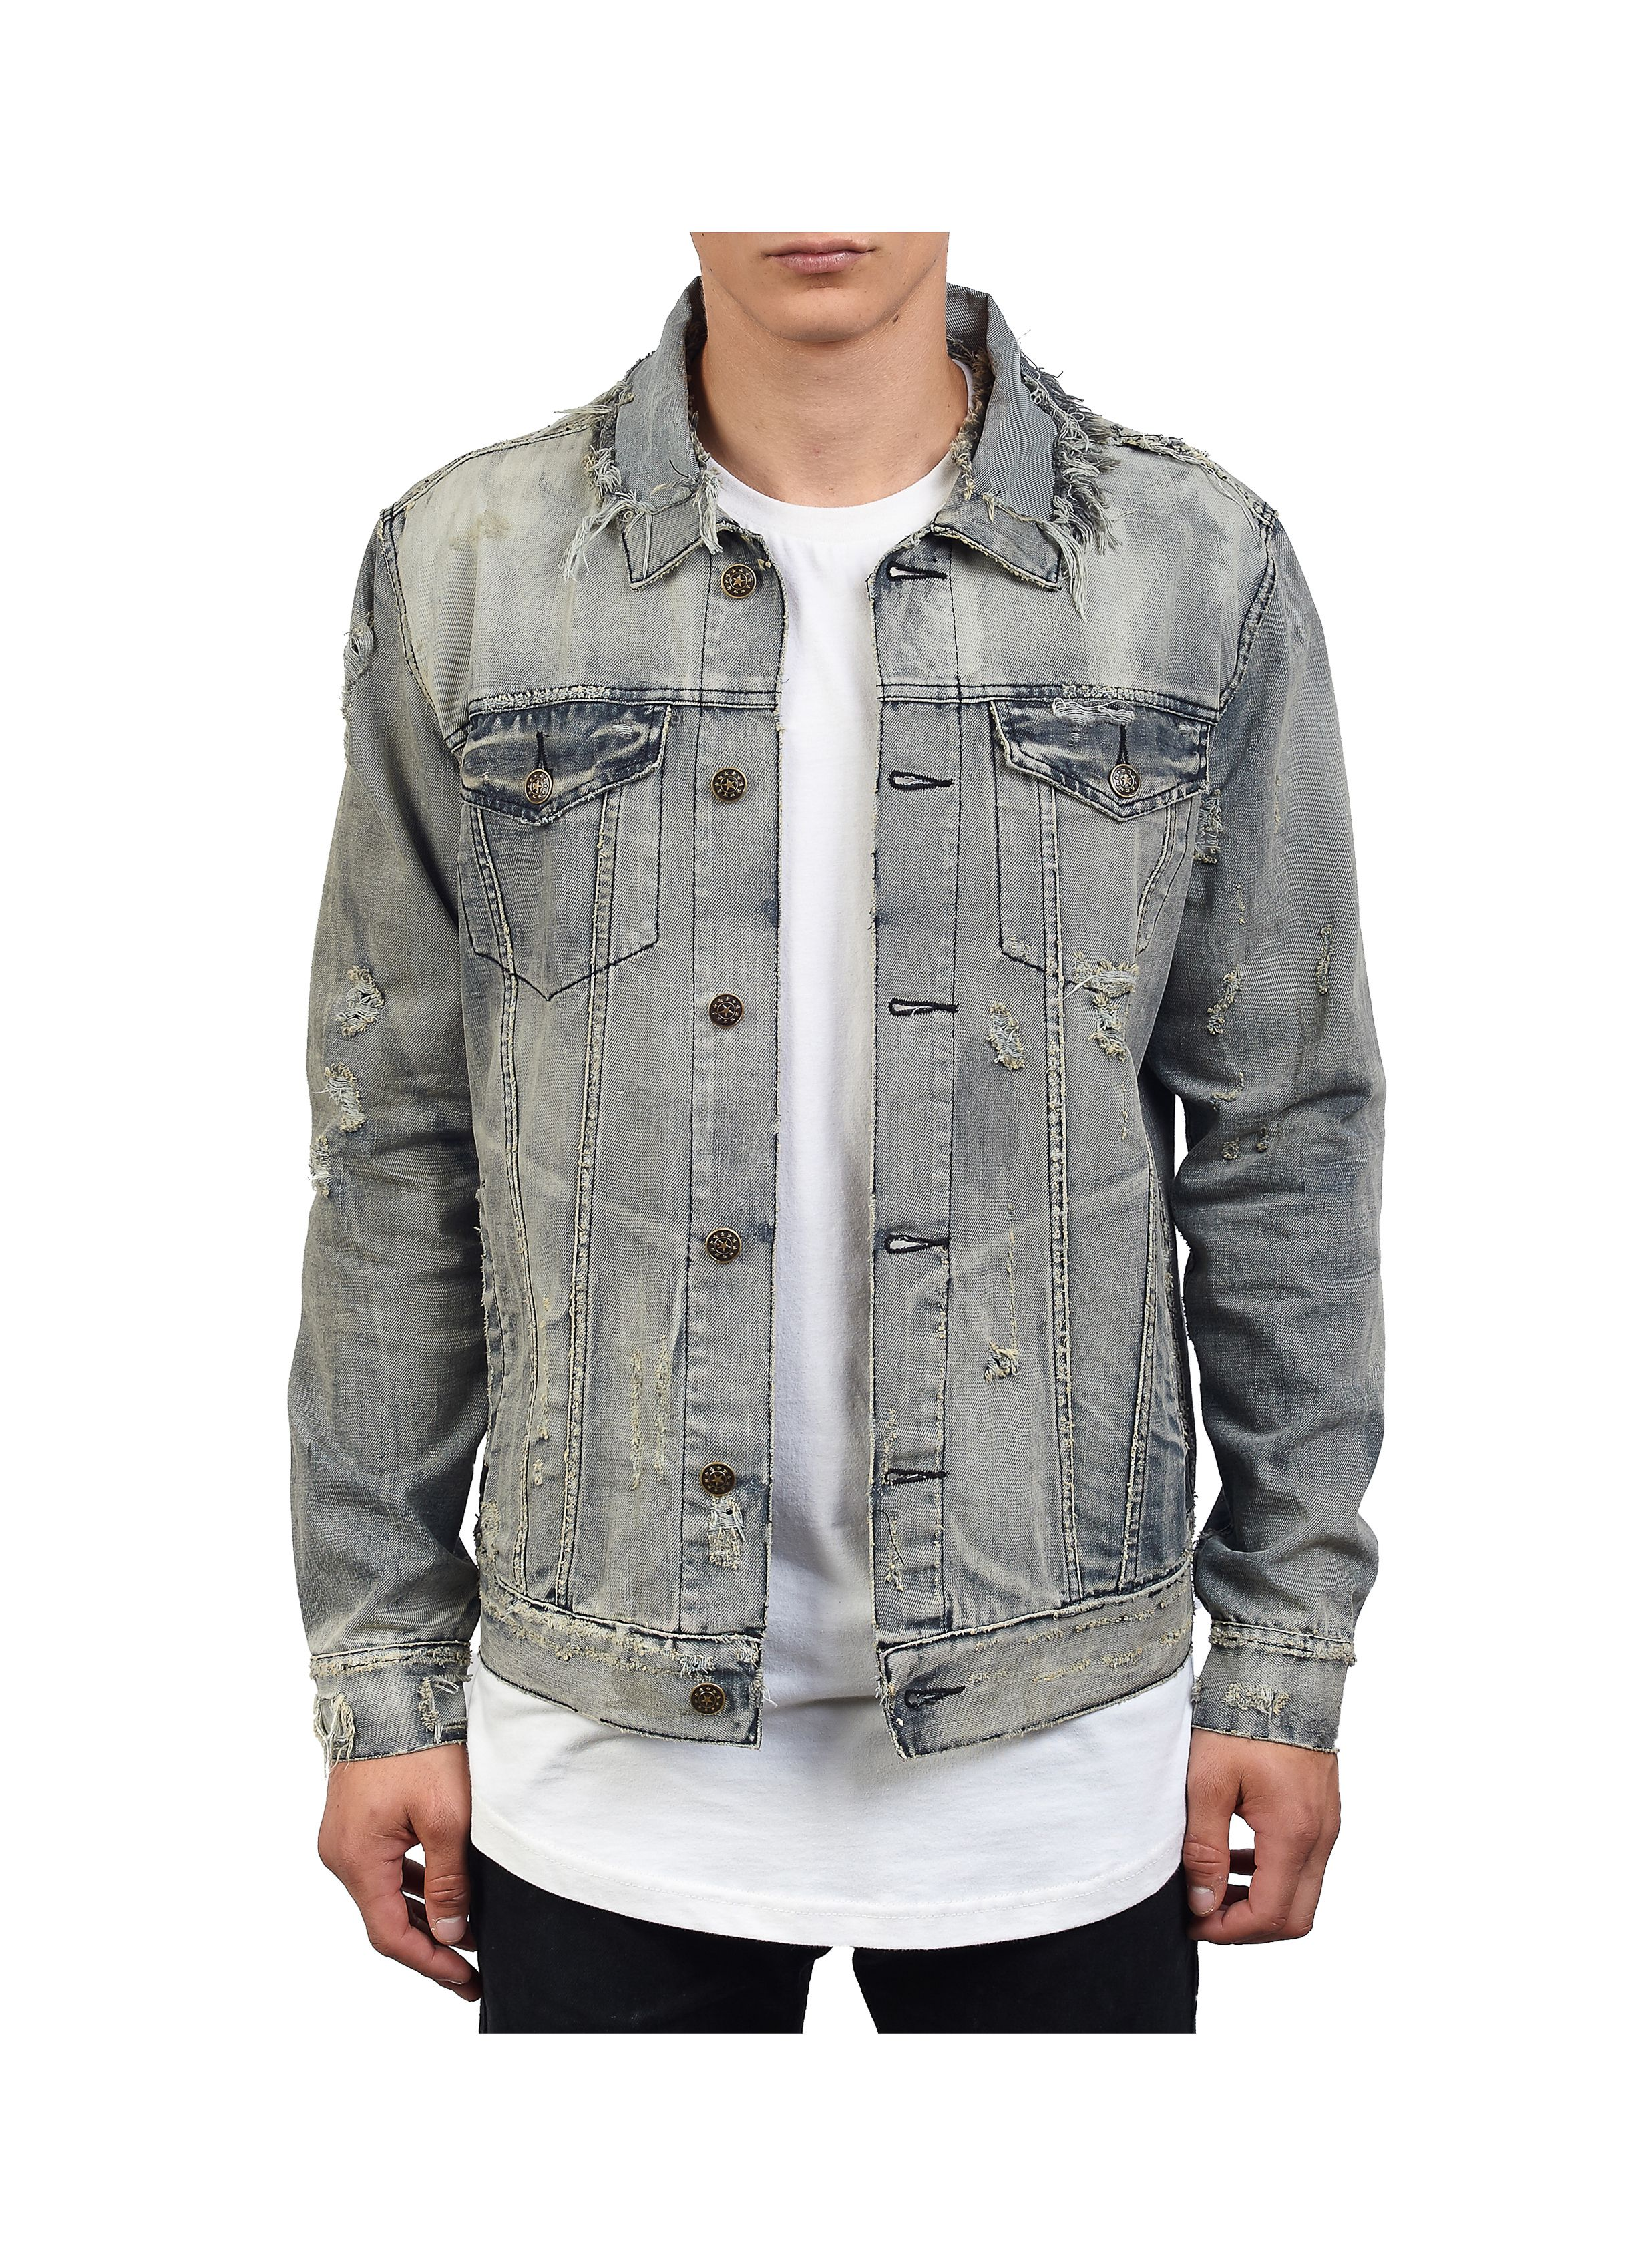 Men S Silver Jewellery Silver Rings Necklaces Denim Jacket Men Denim Jacket Distressed Denim Jacket [ 3396 x 2462 Pixel ]